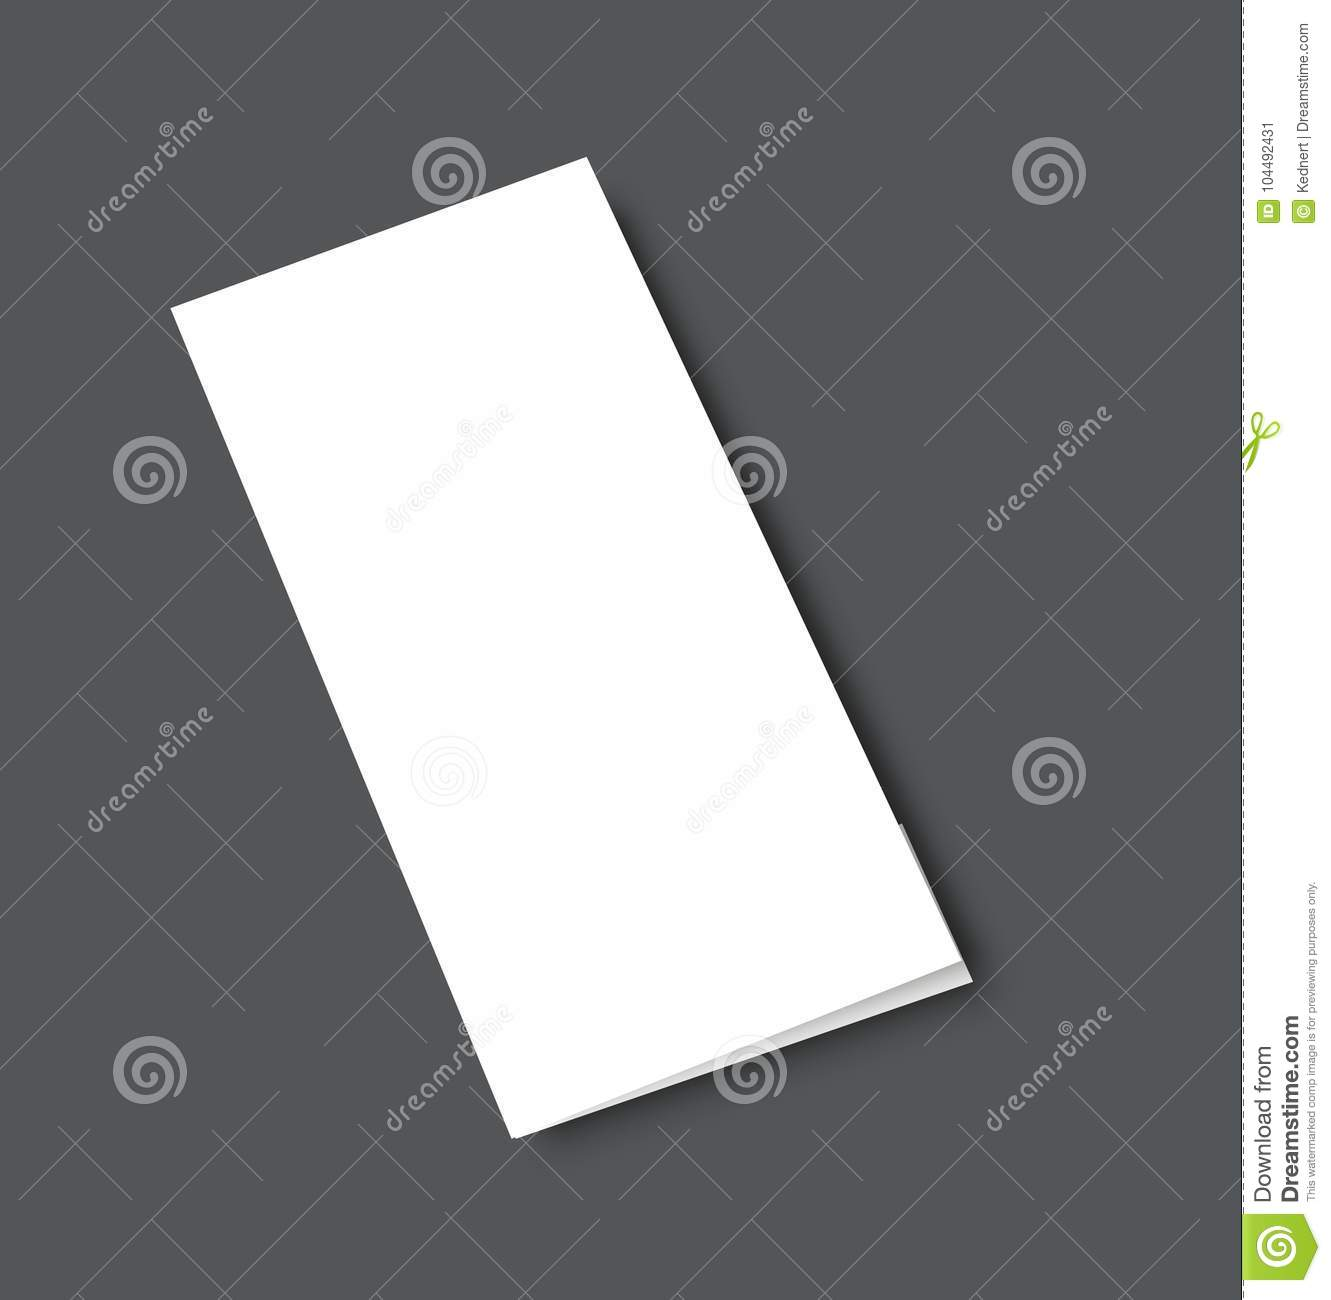 Blank tri fold brochure mock up portrait cover. Isolated